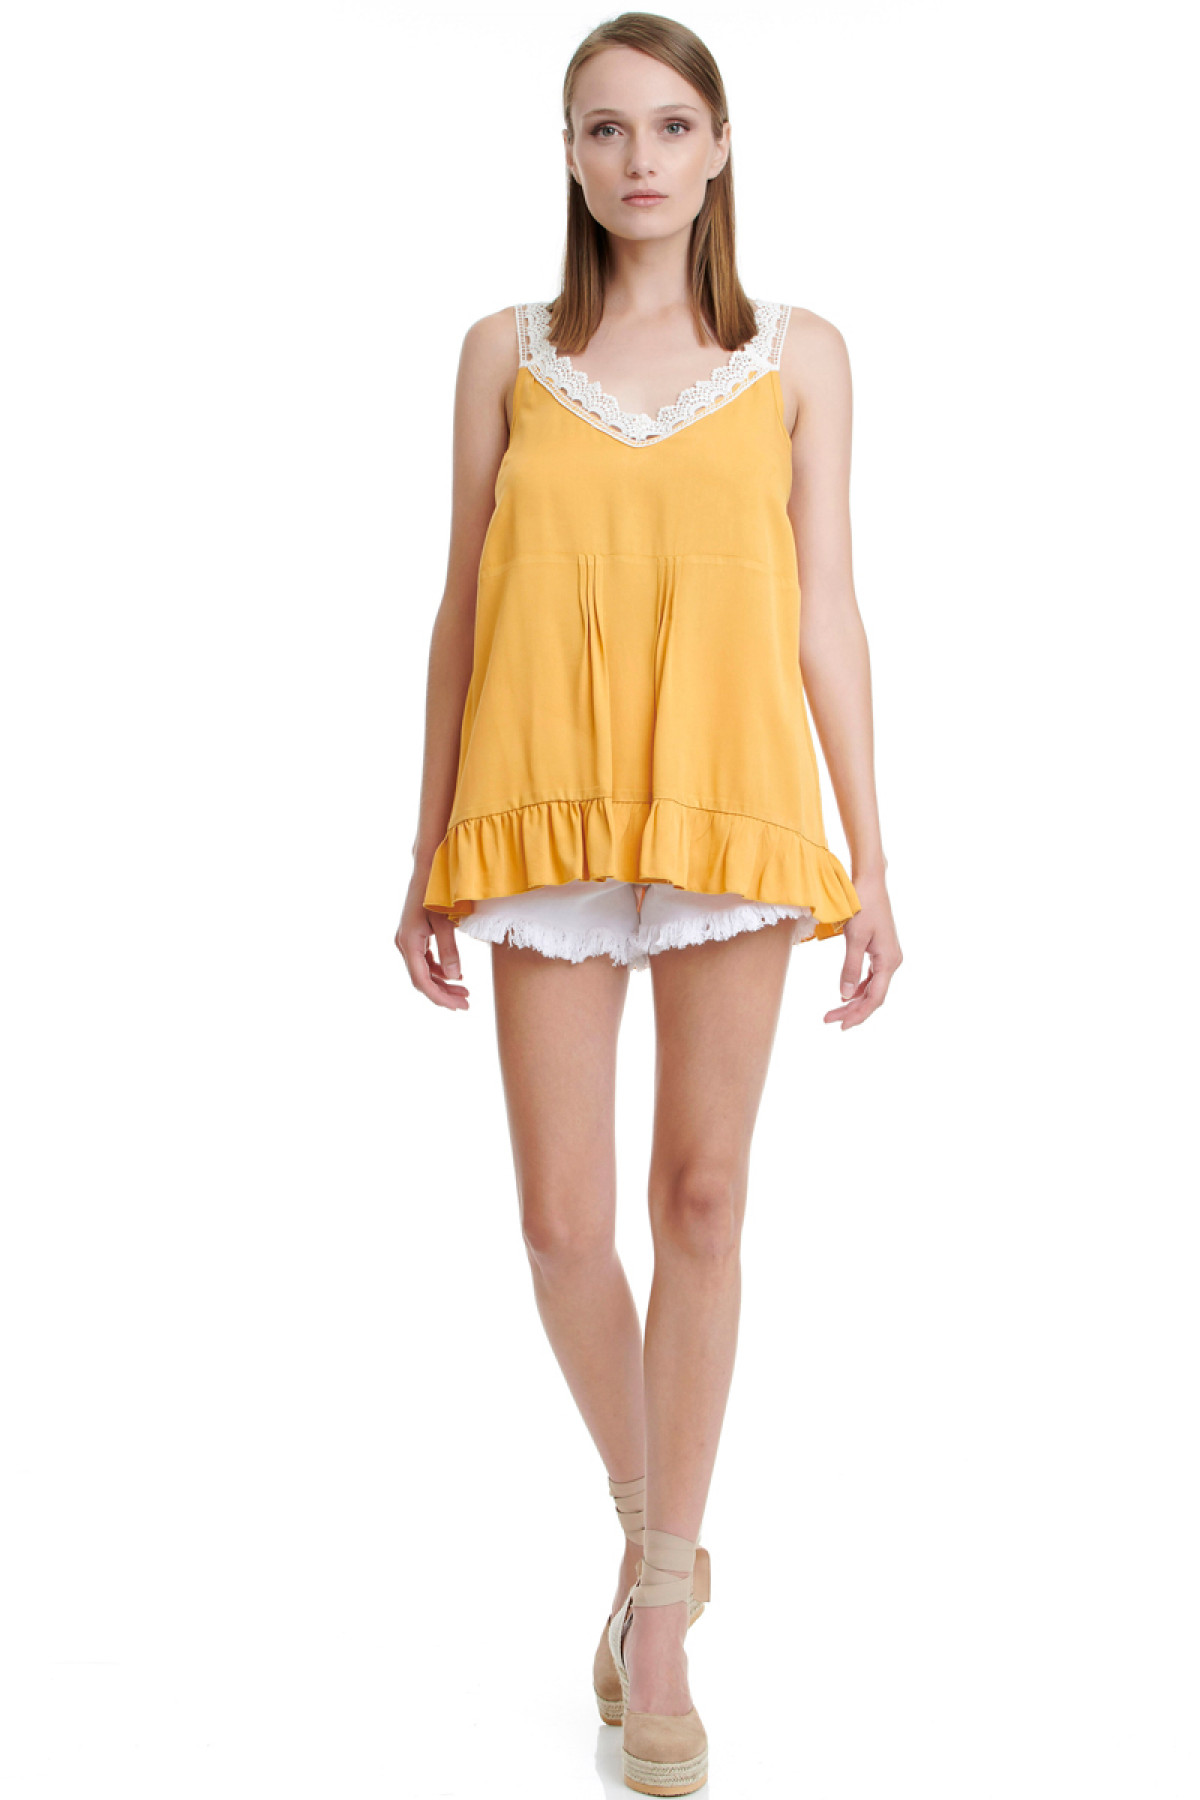 OCHER TOP WITH LACE STRAPS